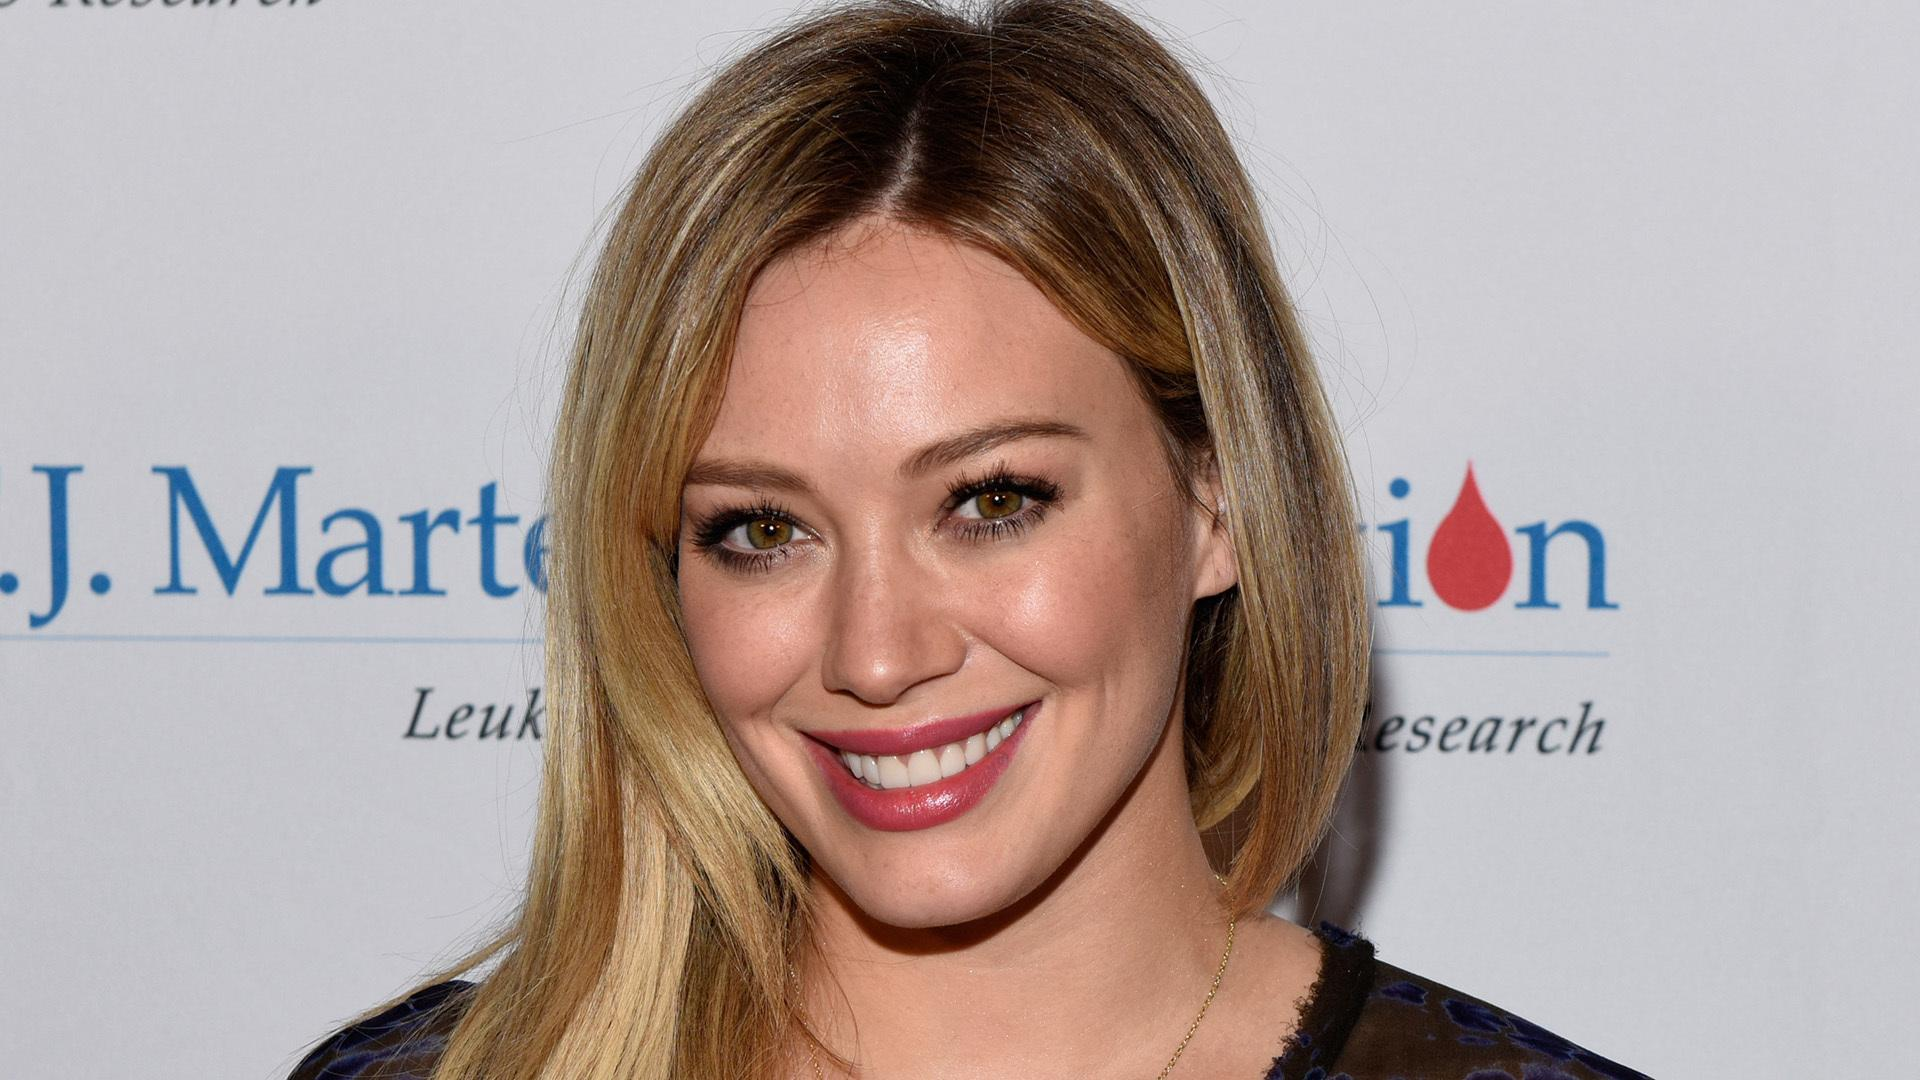 Hilary Duff Says She doesn't Need the Perfect Body